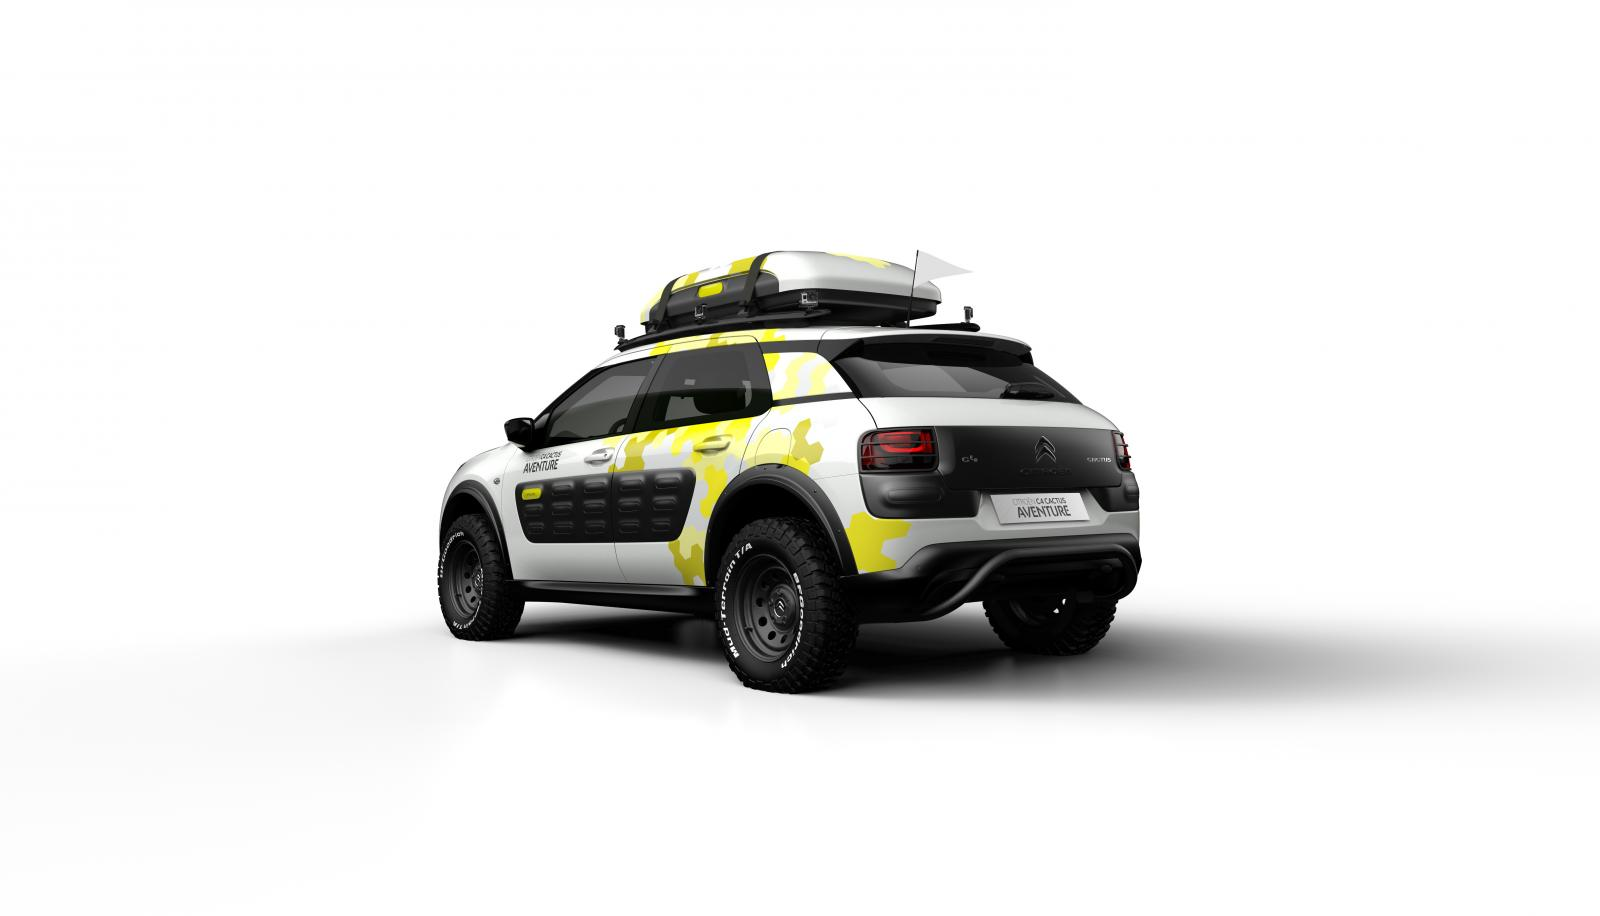 Concept-car C4 Cactus Adventure 2014 rear 3/4